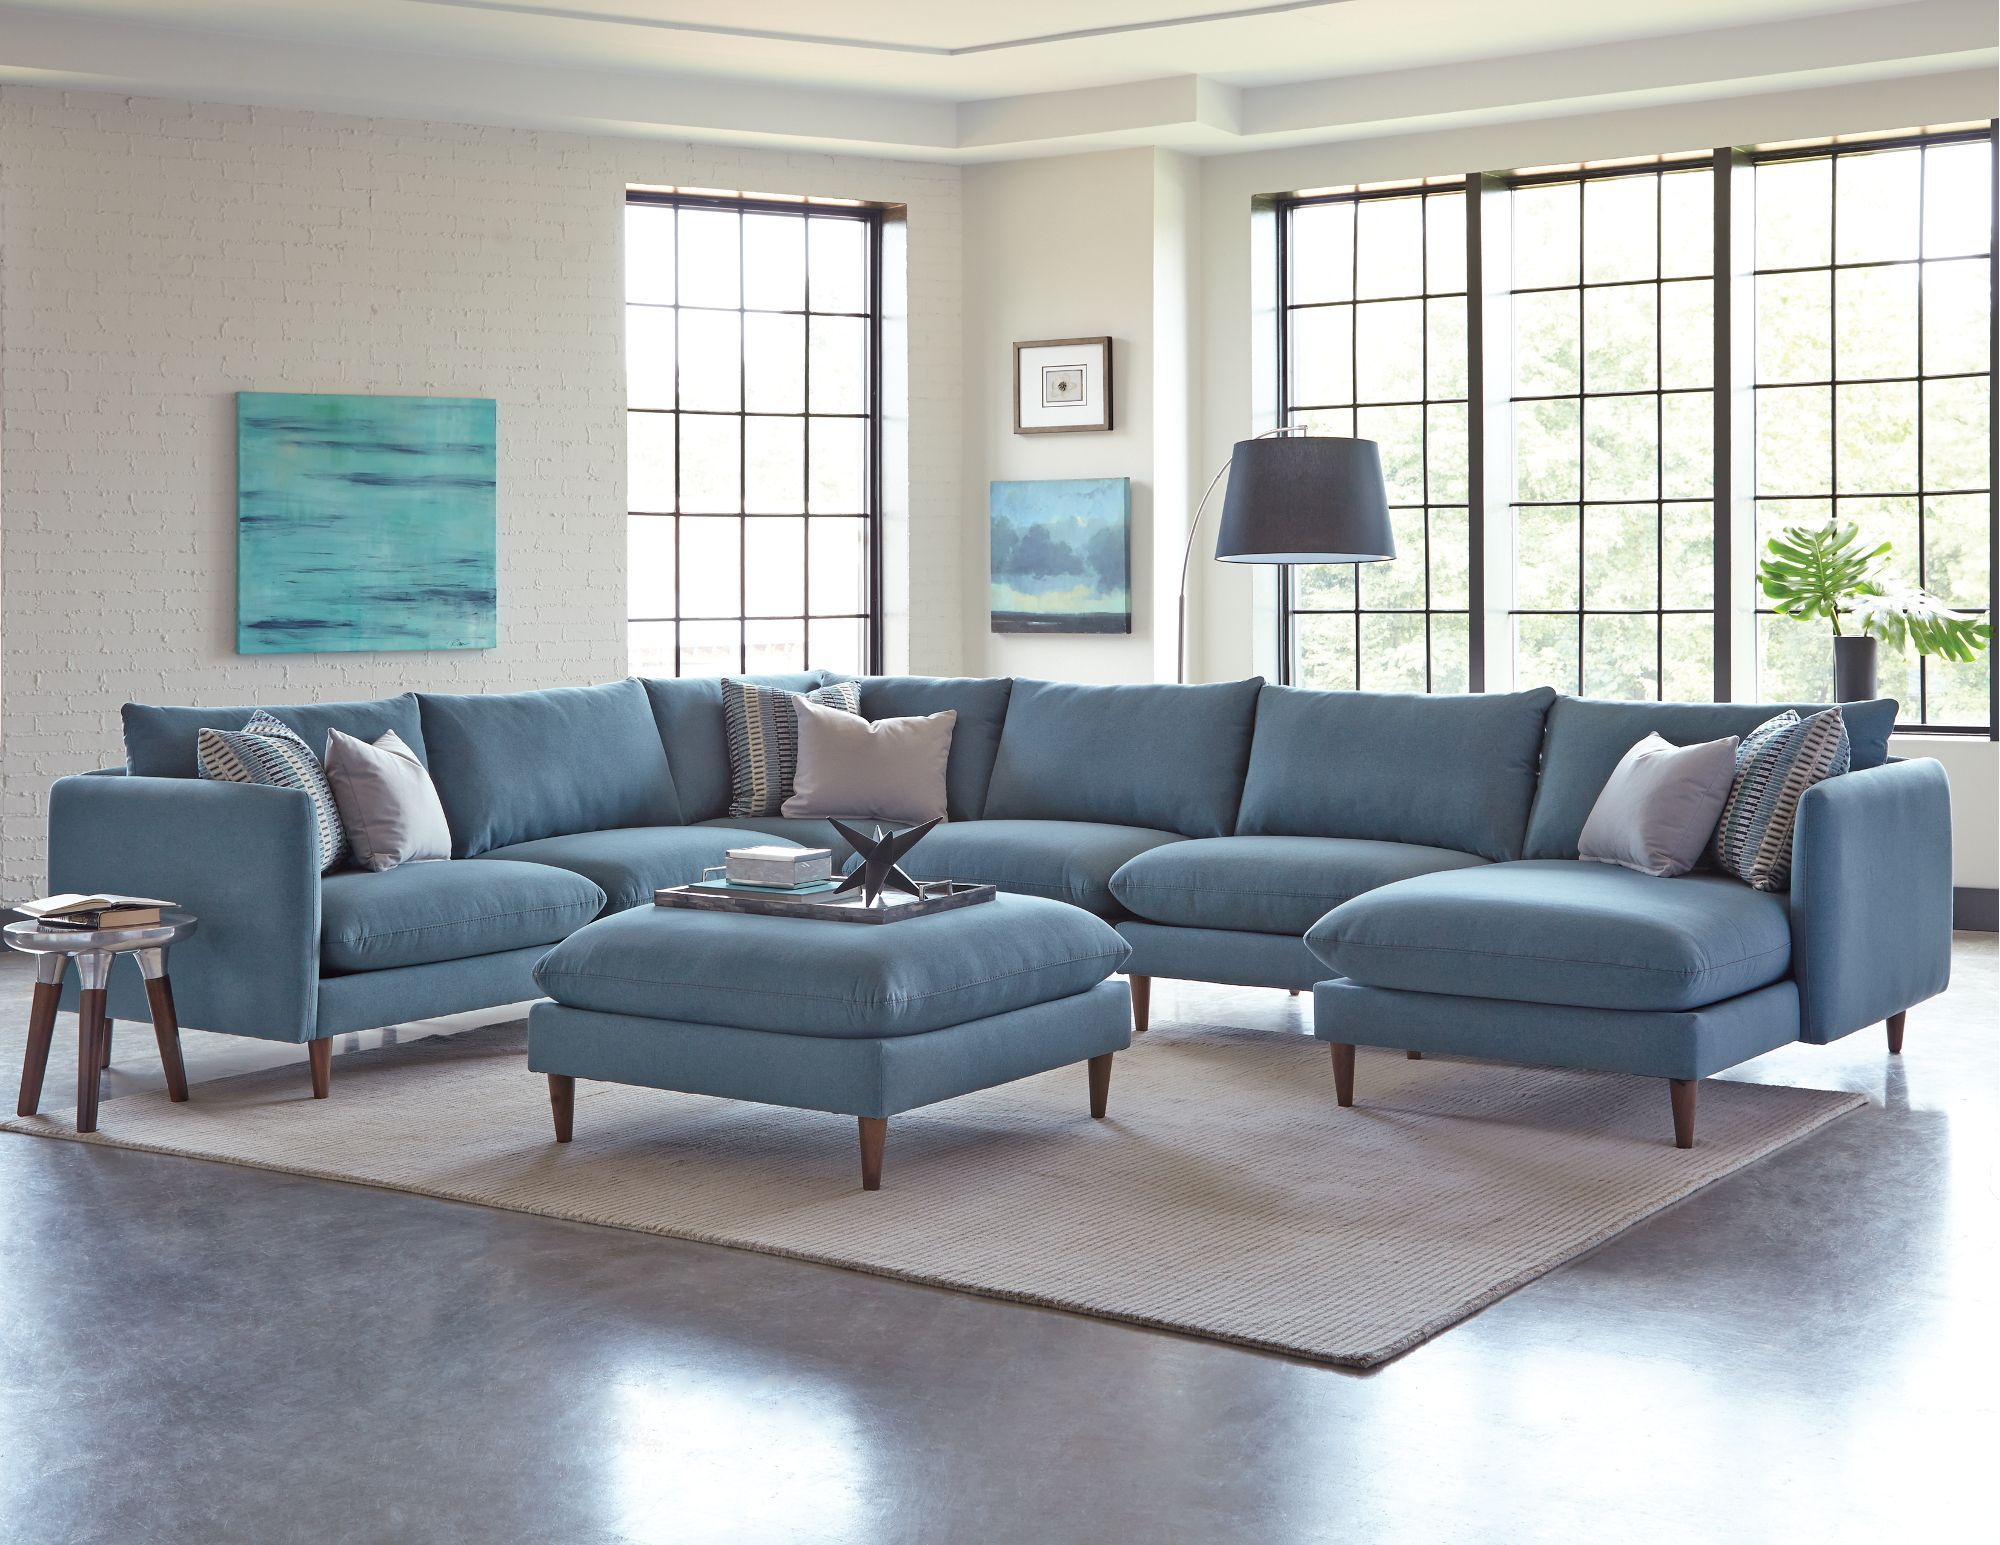 Melbourne Blue Upholstered 6 Piece Casual Modern Sectional Modern Furniture Living Room Turquoise Living Room Decor Home